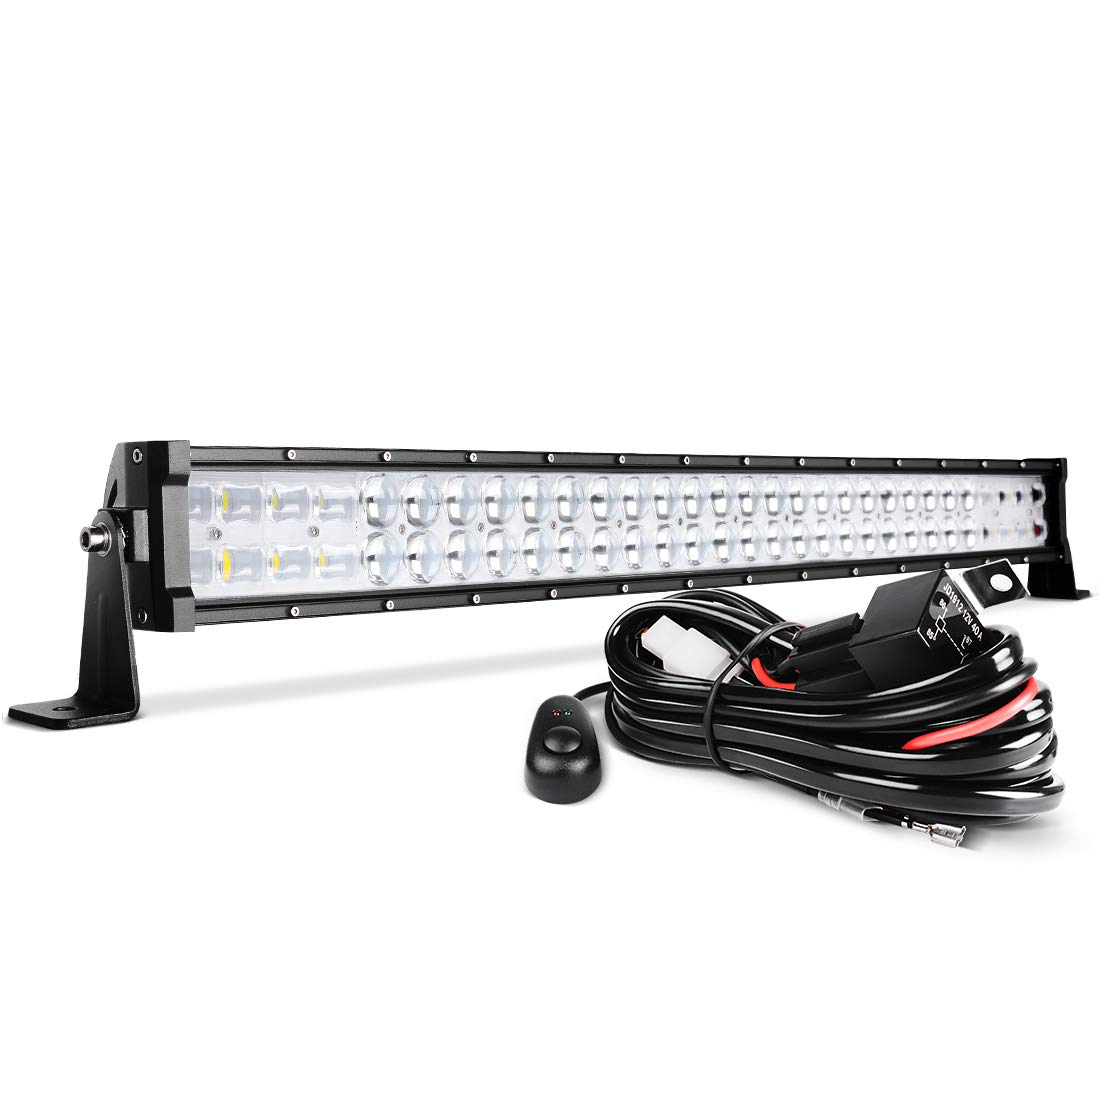 2 Year Warranty 32 LED Light Bar DWVO 390W Straight 48000LM Upgrated Chipset with 8ft Wiring Harness for Offroad Driving Fog Lamp Marine Boating IP68 WATERPROOF Spot /& Flood Combo Beam Light Bars